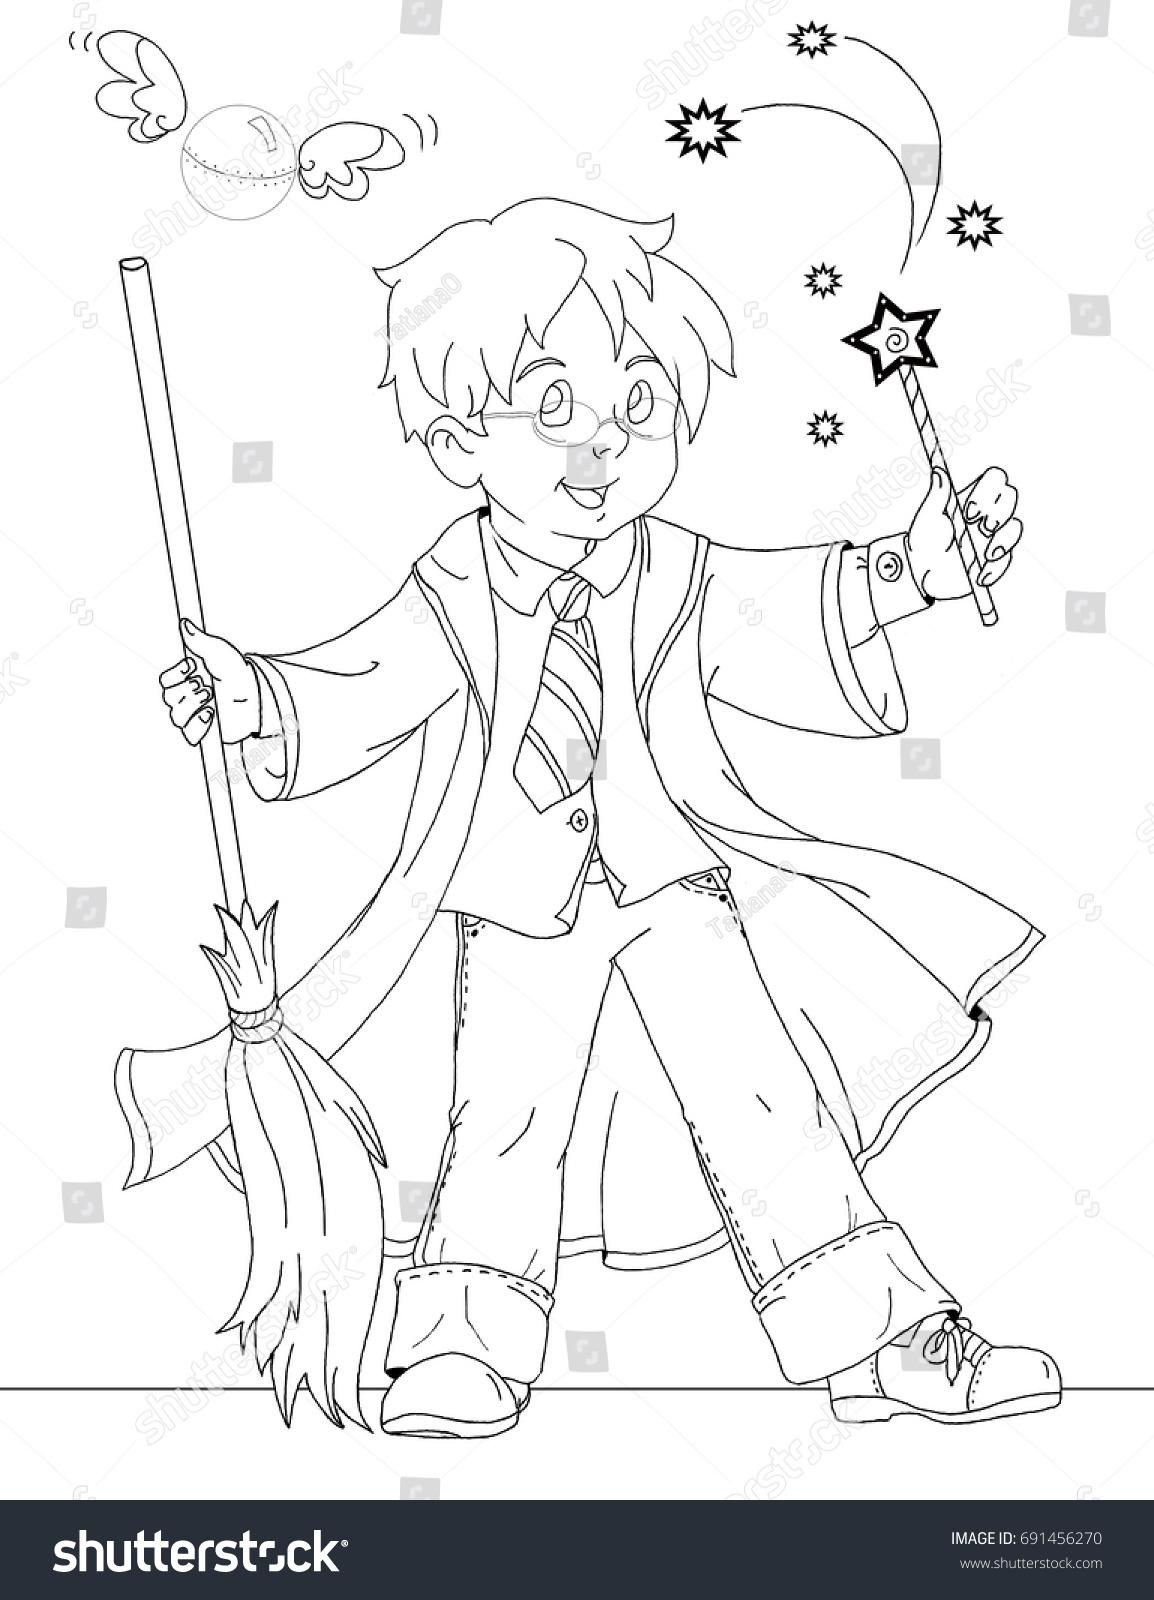 Coloring Page Wizard Boy Stock Illustration 691456270 - Shutterstock